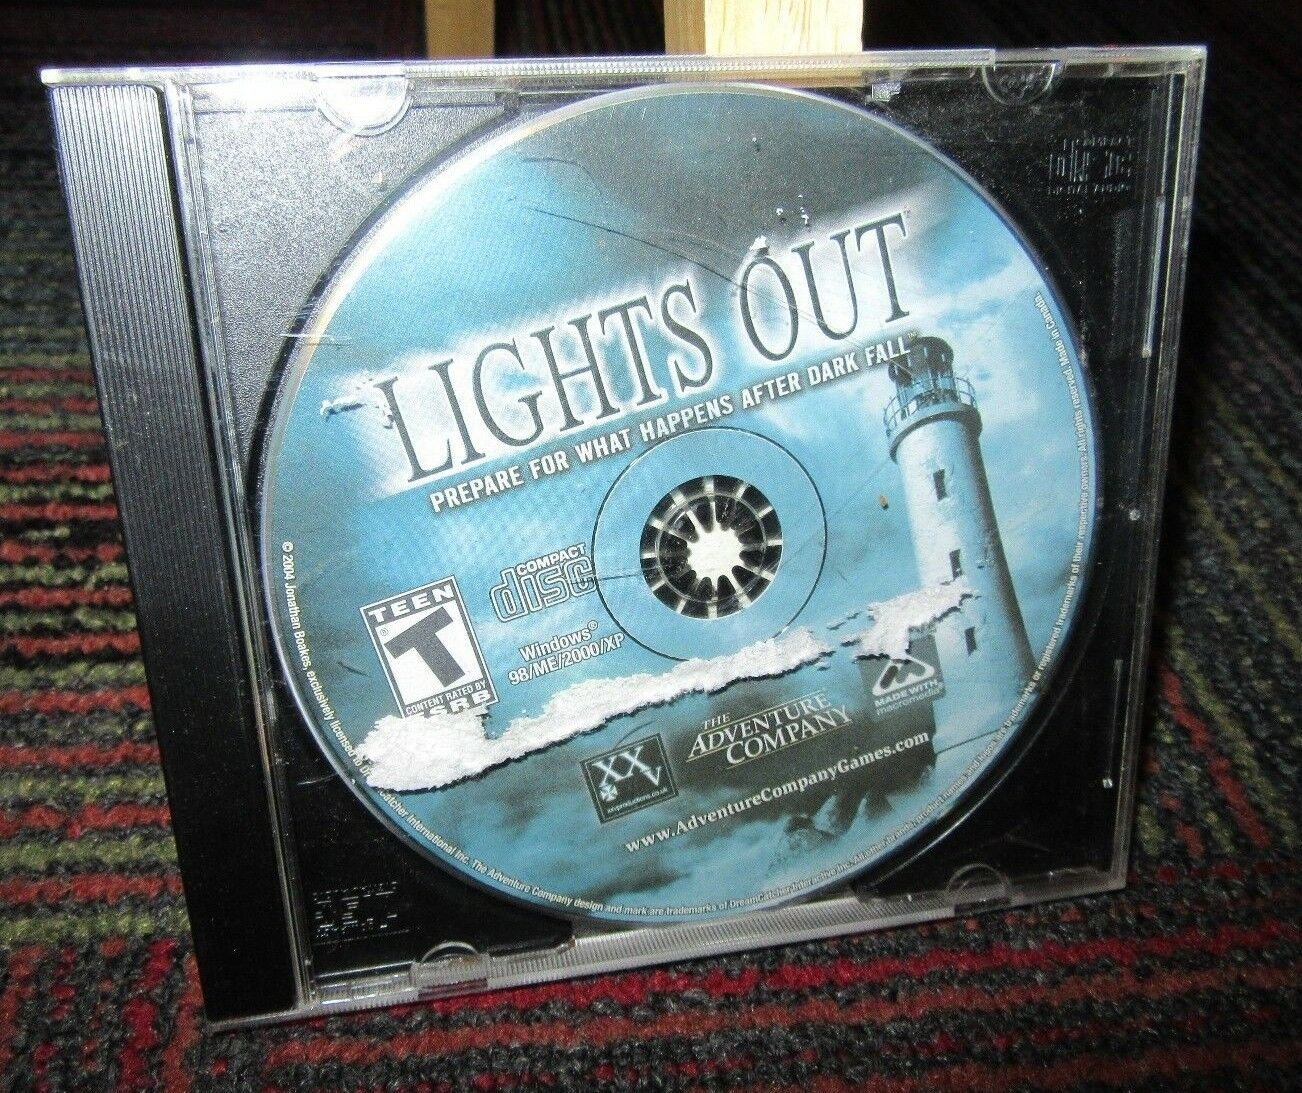 Lights Out Pc 2004 For Online